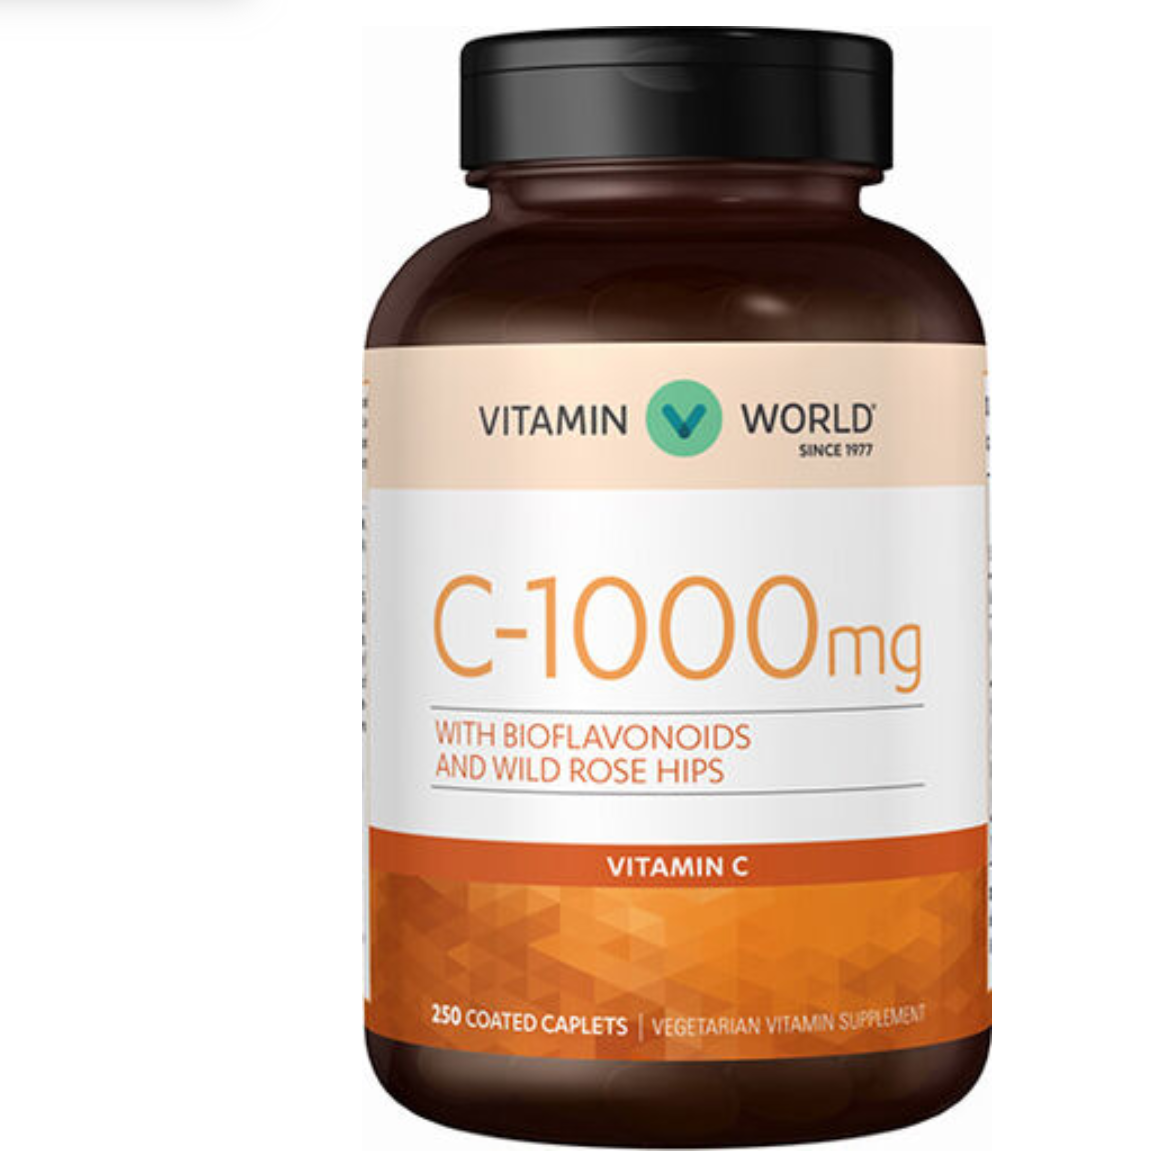 Vitamin World: $20 off $120 or $30 off $150 on Select Styles